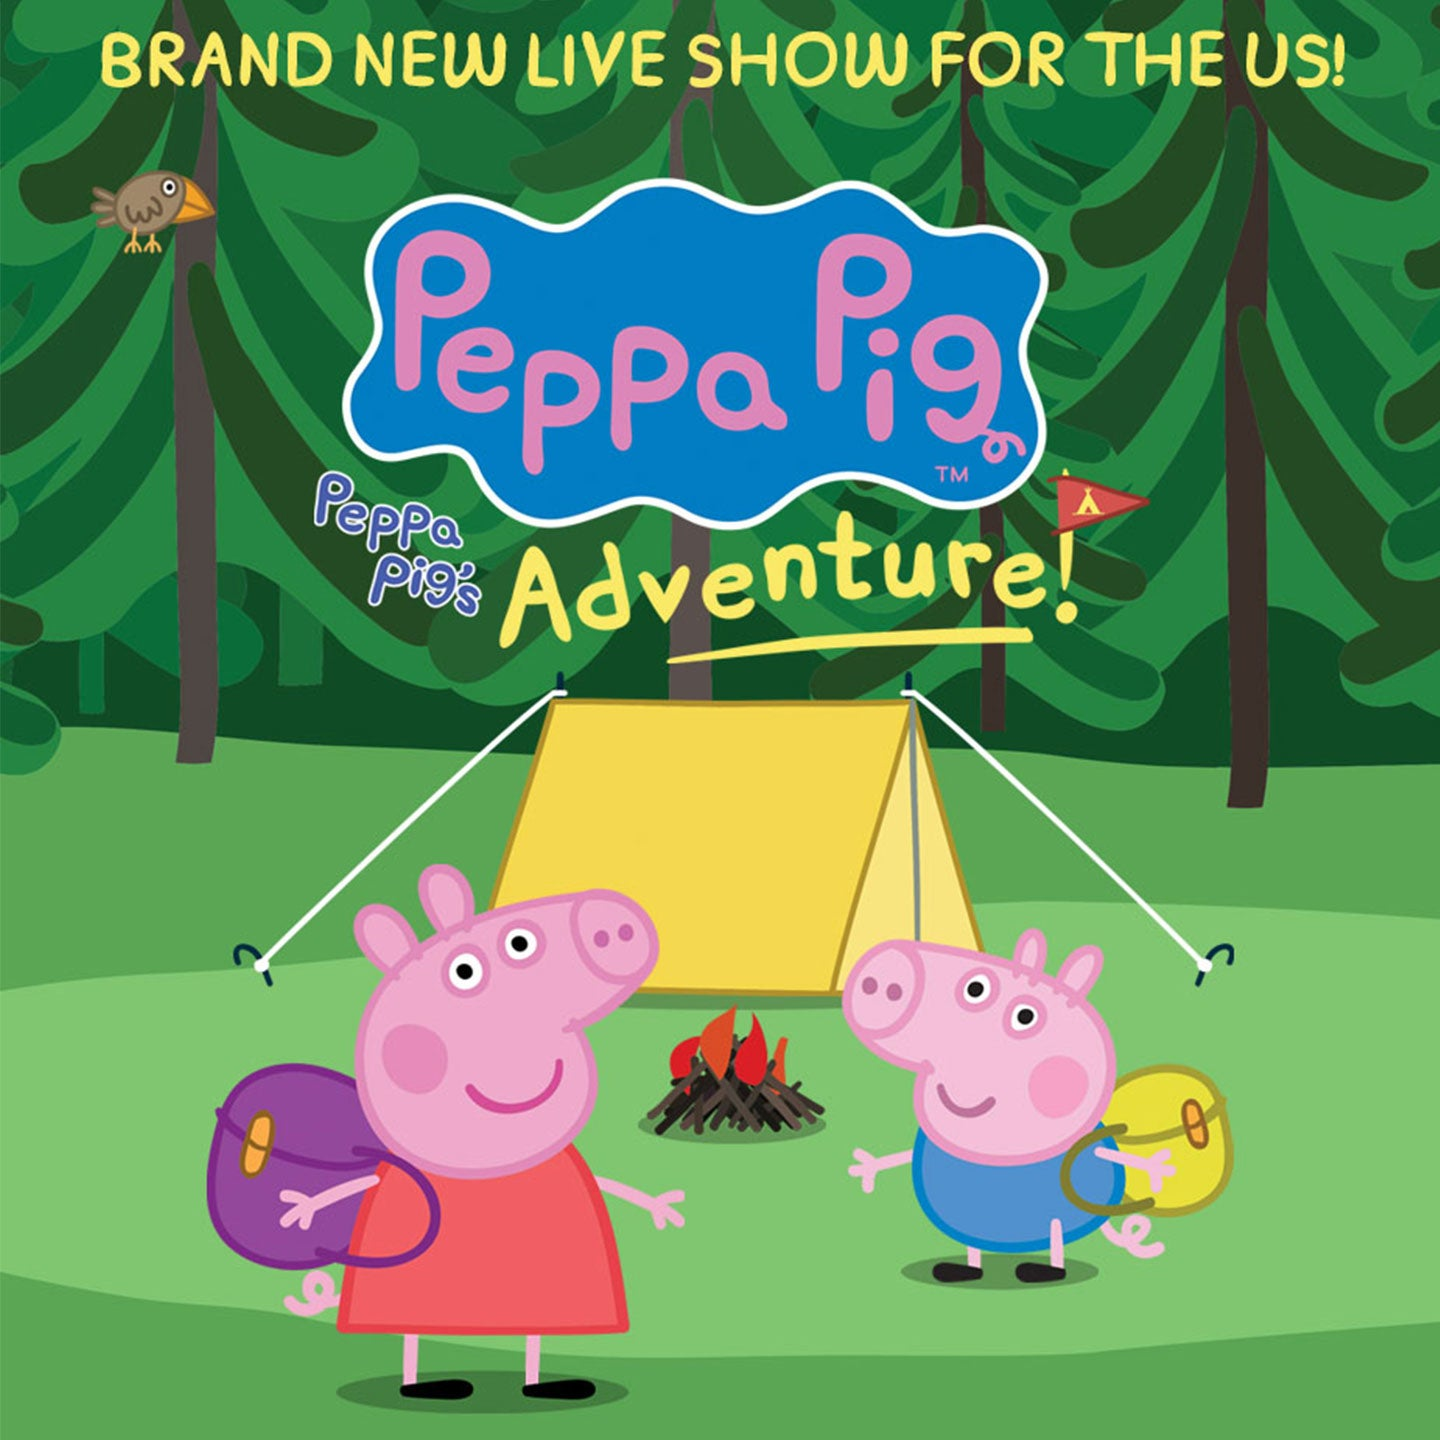 Peppa Pig Live! | Blumenthal Performing Arts